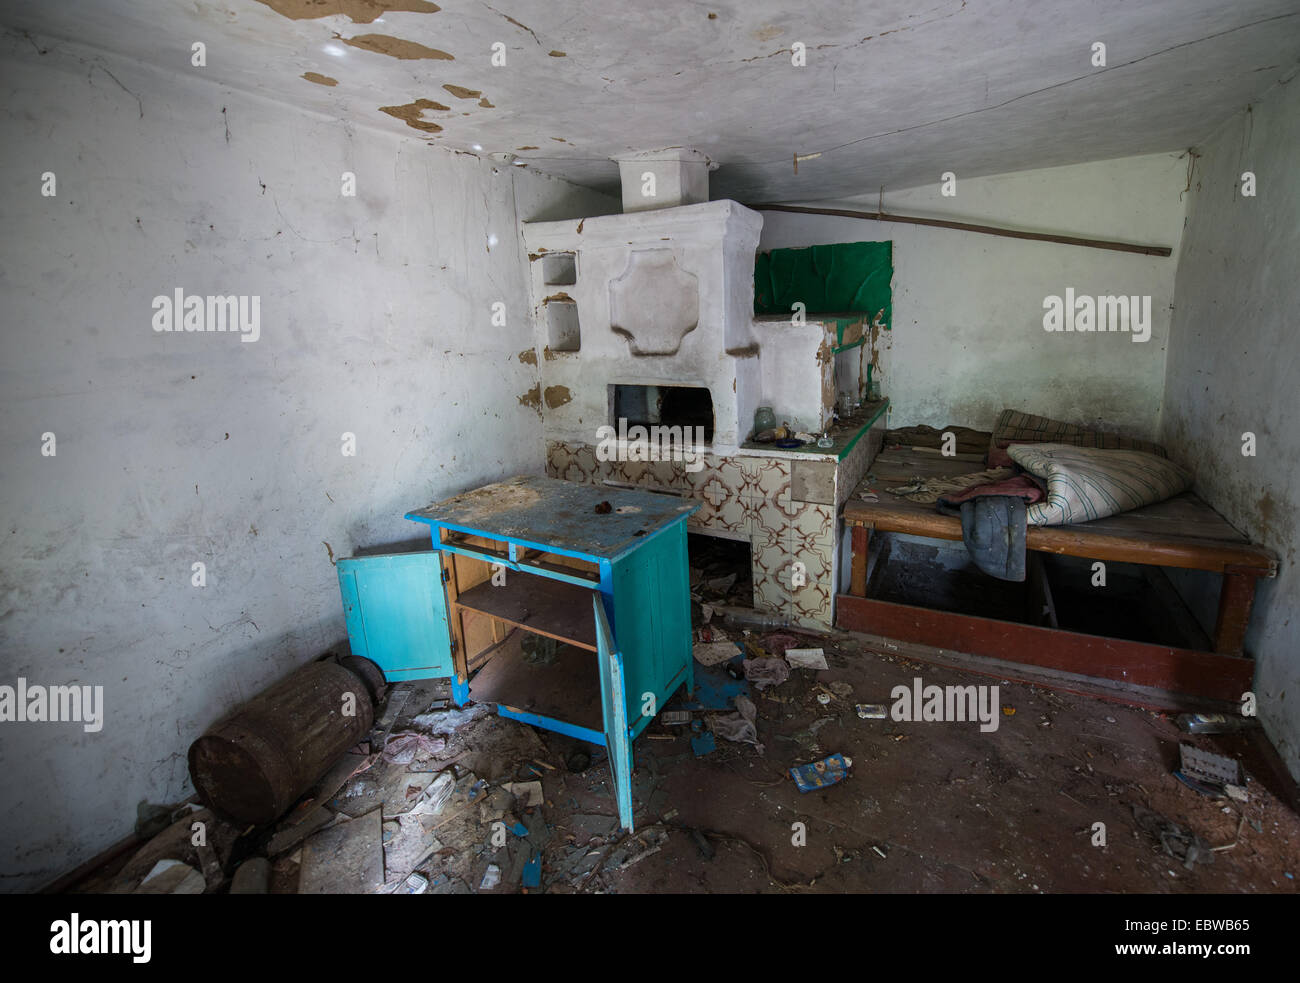 big stove with bedspace in old wooden cottage in abandoned Stechanka village, Chernobyl Exclusion Zone, Ukraine Stock Photo